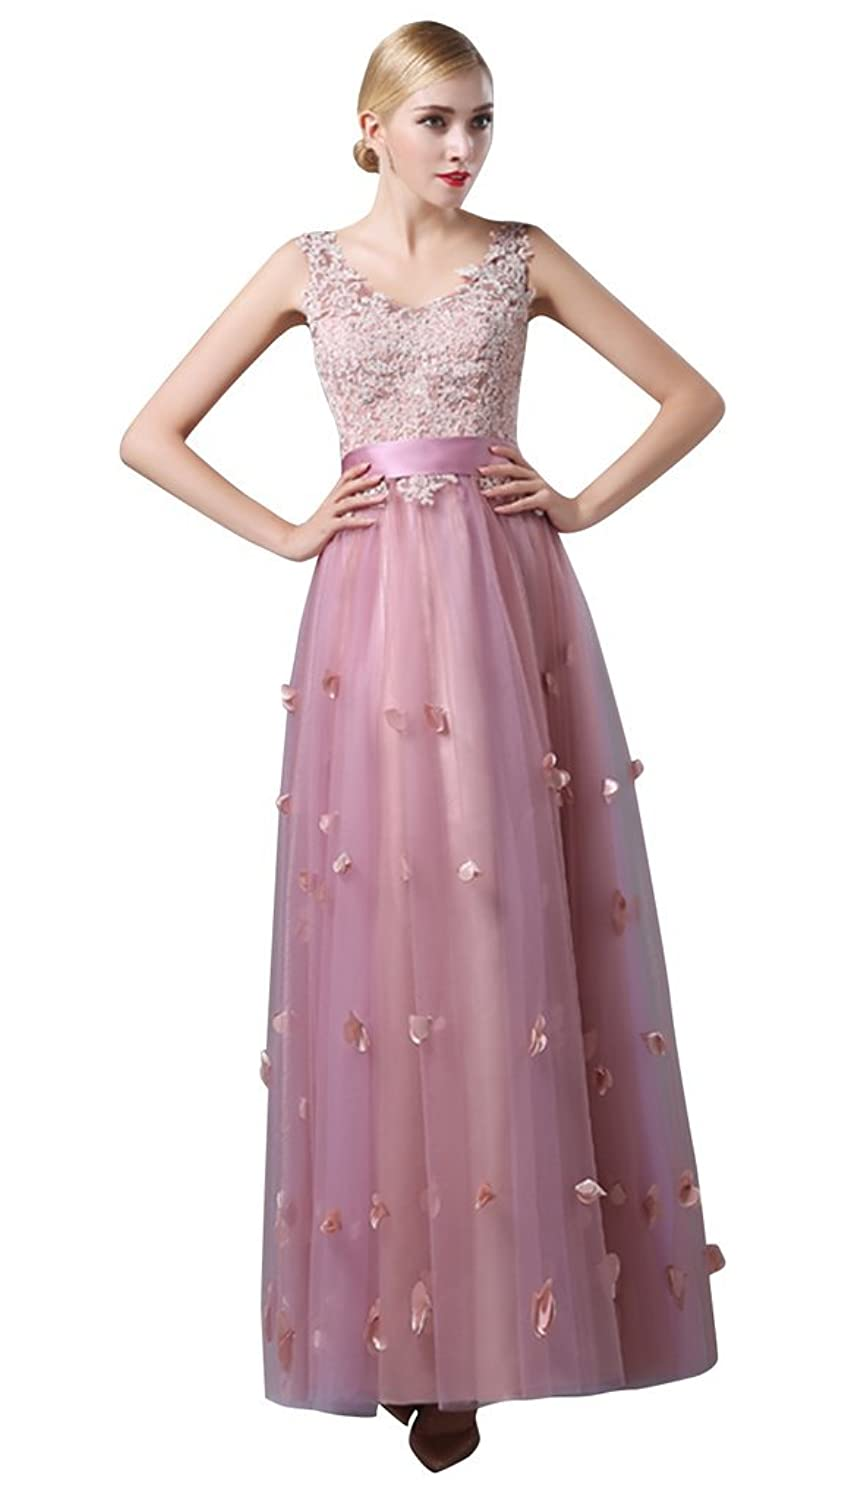 Drasawee Women's Sleeveless Lace Appliqued Formal Long Evening Prom Dress